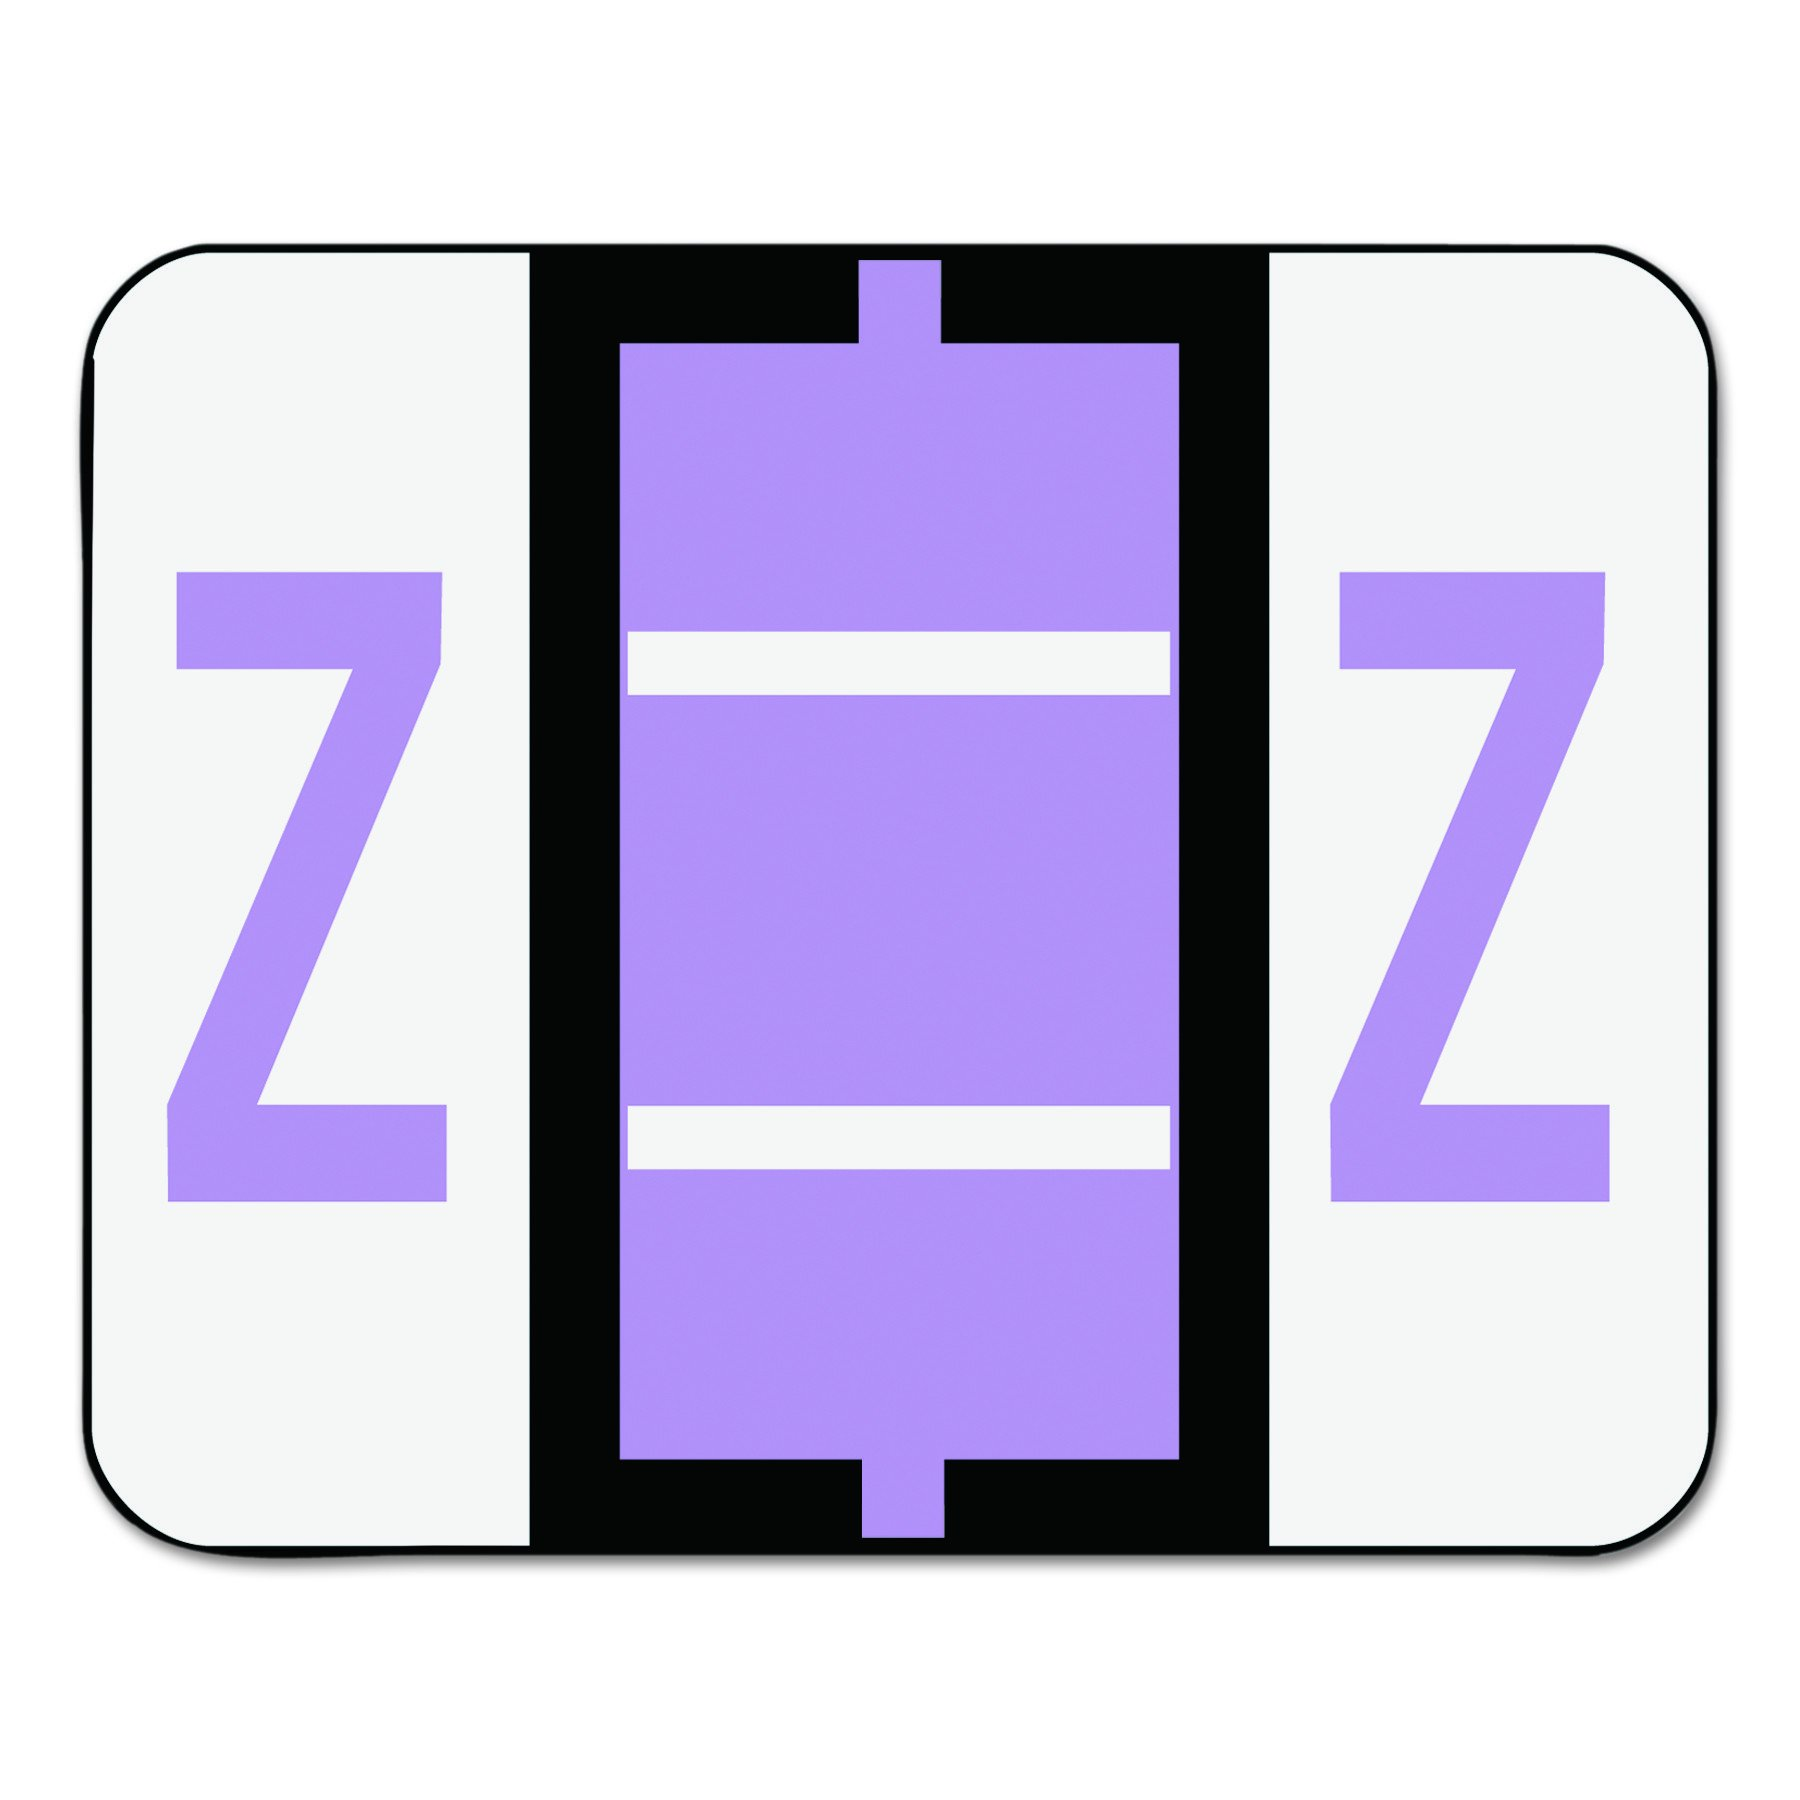 Smead 67096 A-Z Color-Coded Bar-Style End Tab Labels, Letter Z, Lavender, 500 per Roll